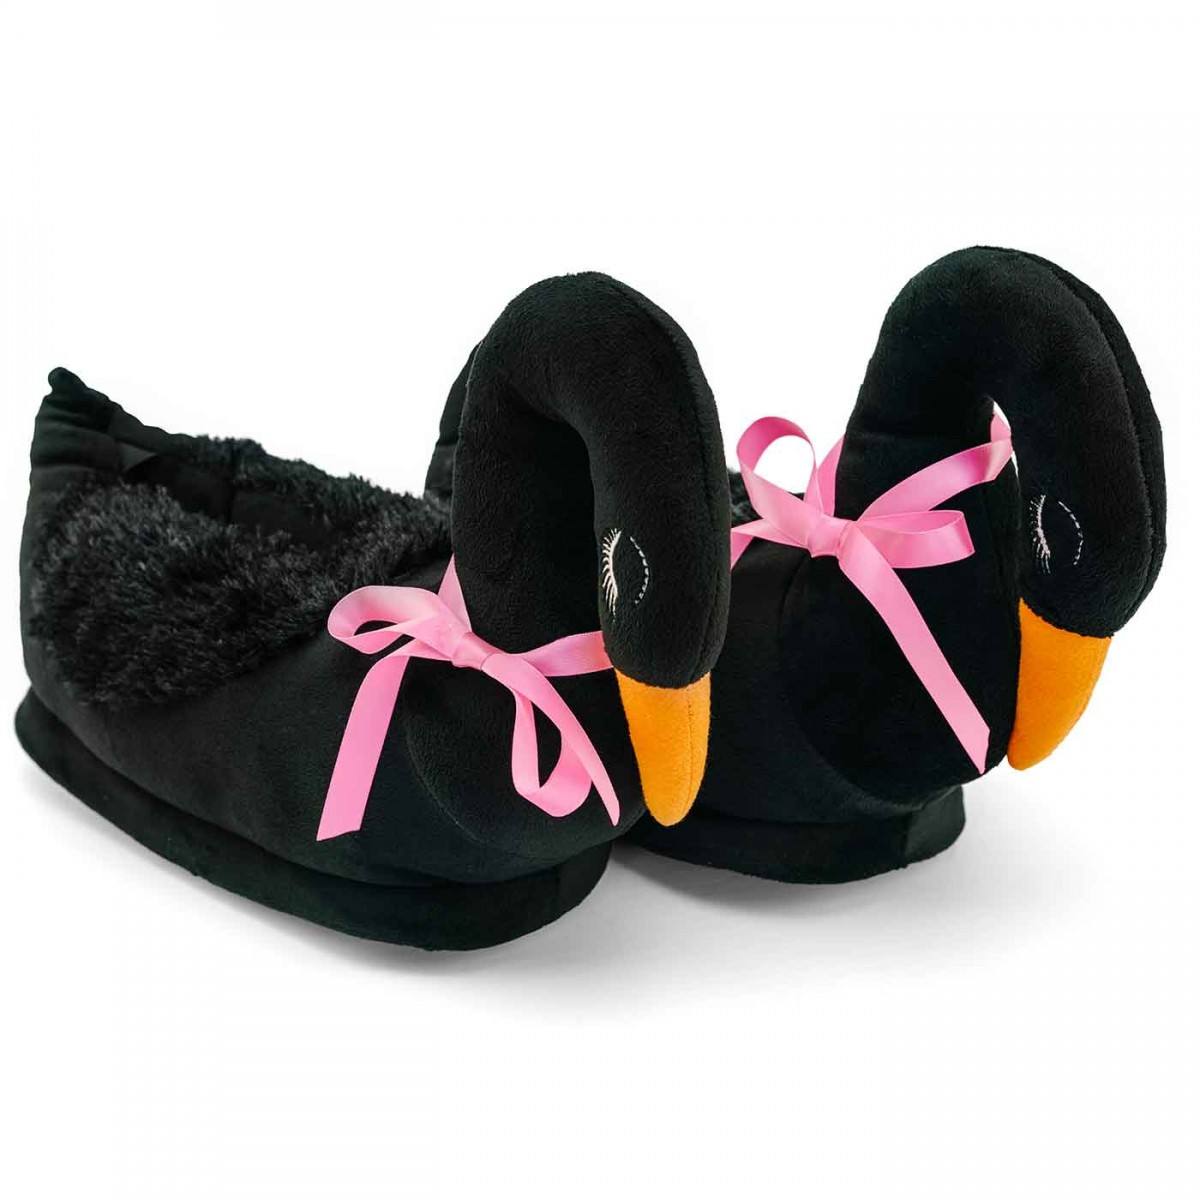 Funny Black Swan Plush Slippers